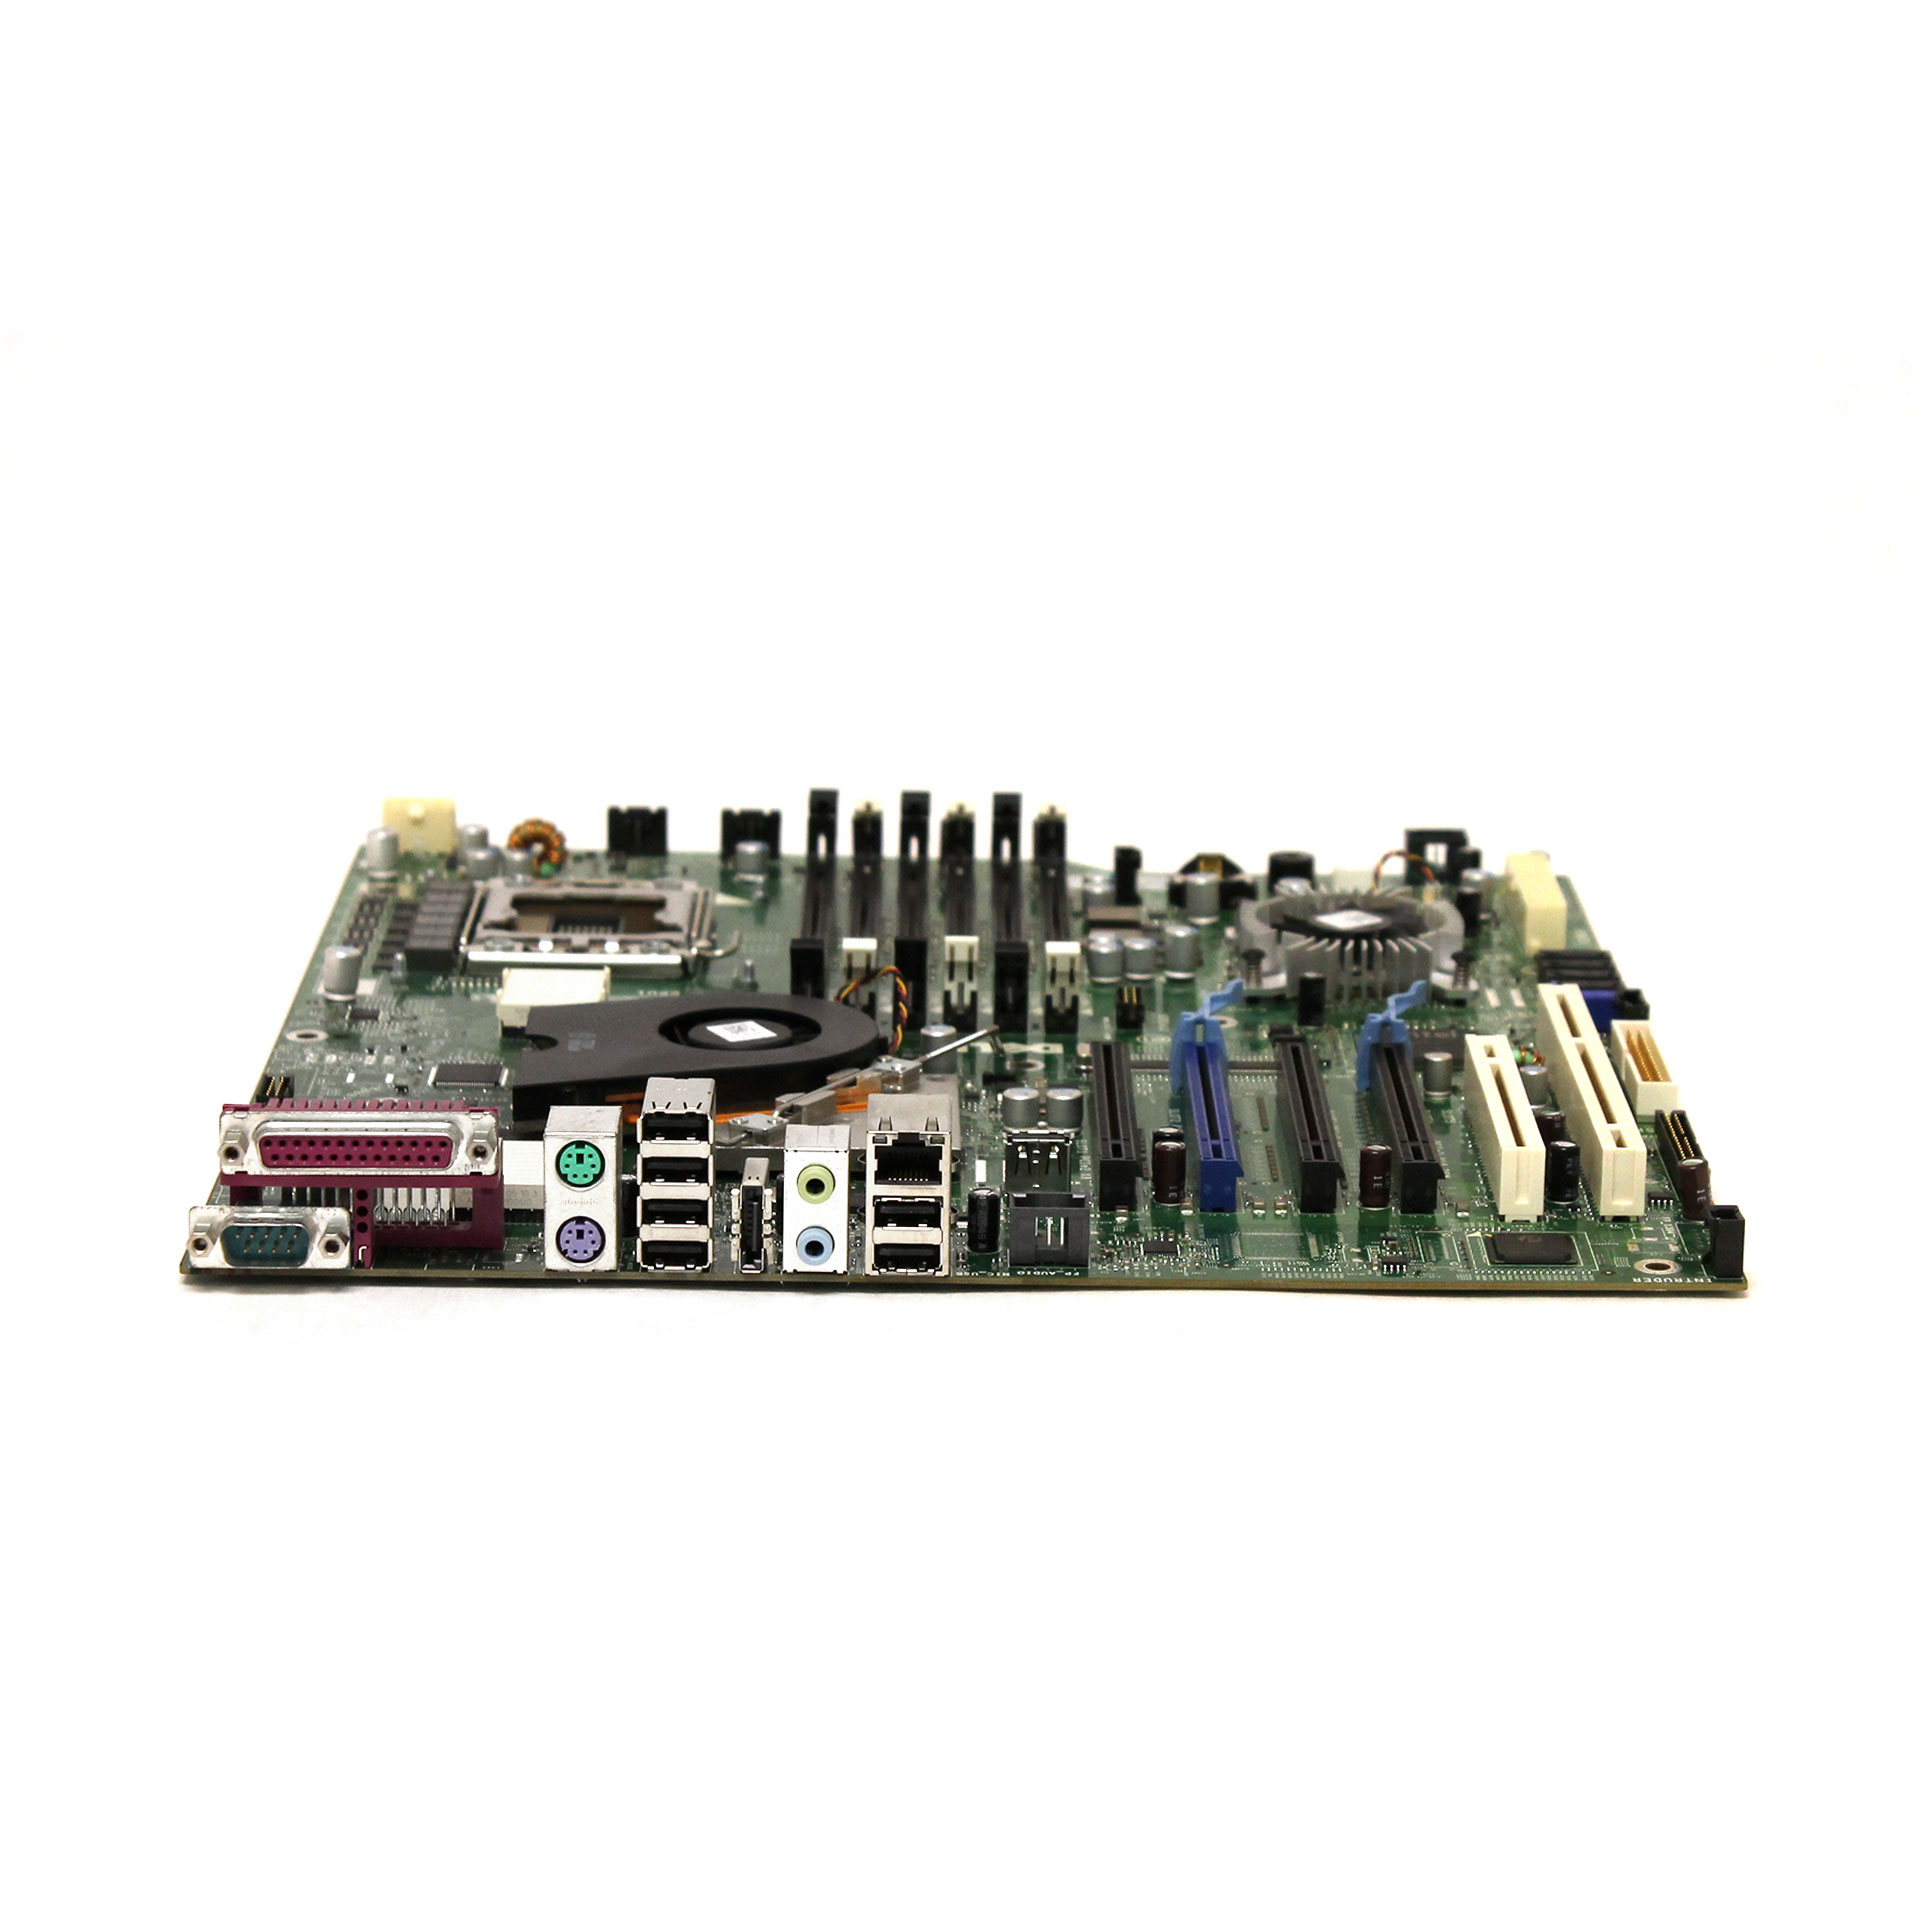 Dell Precision T5500 Computer/ Workstation Motherboard D883F